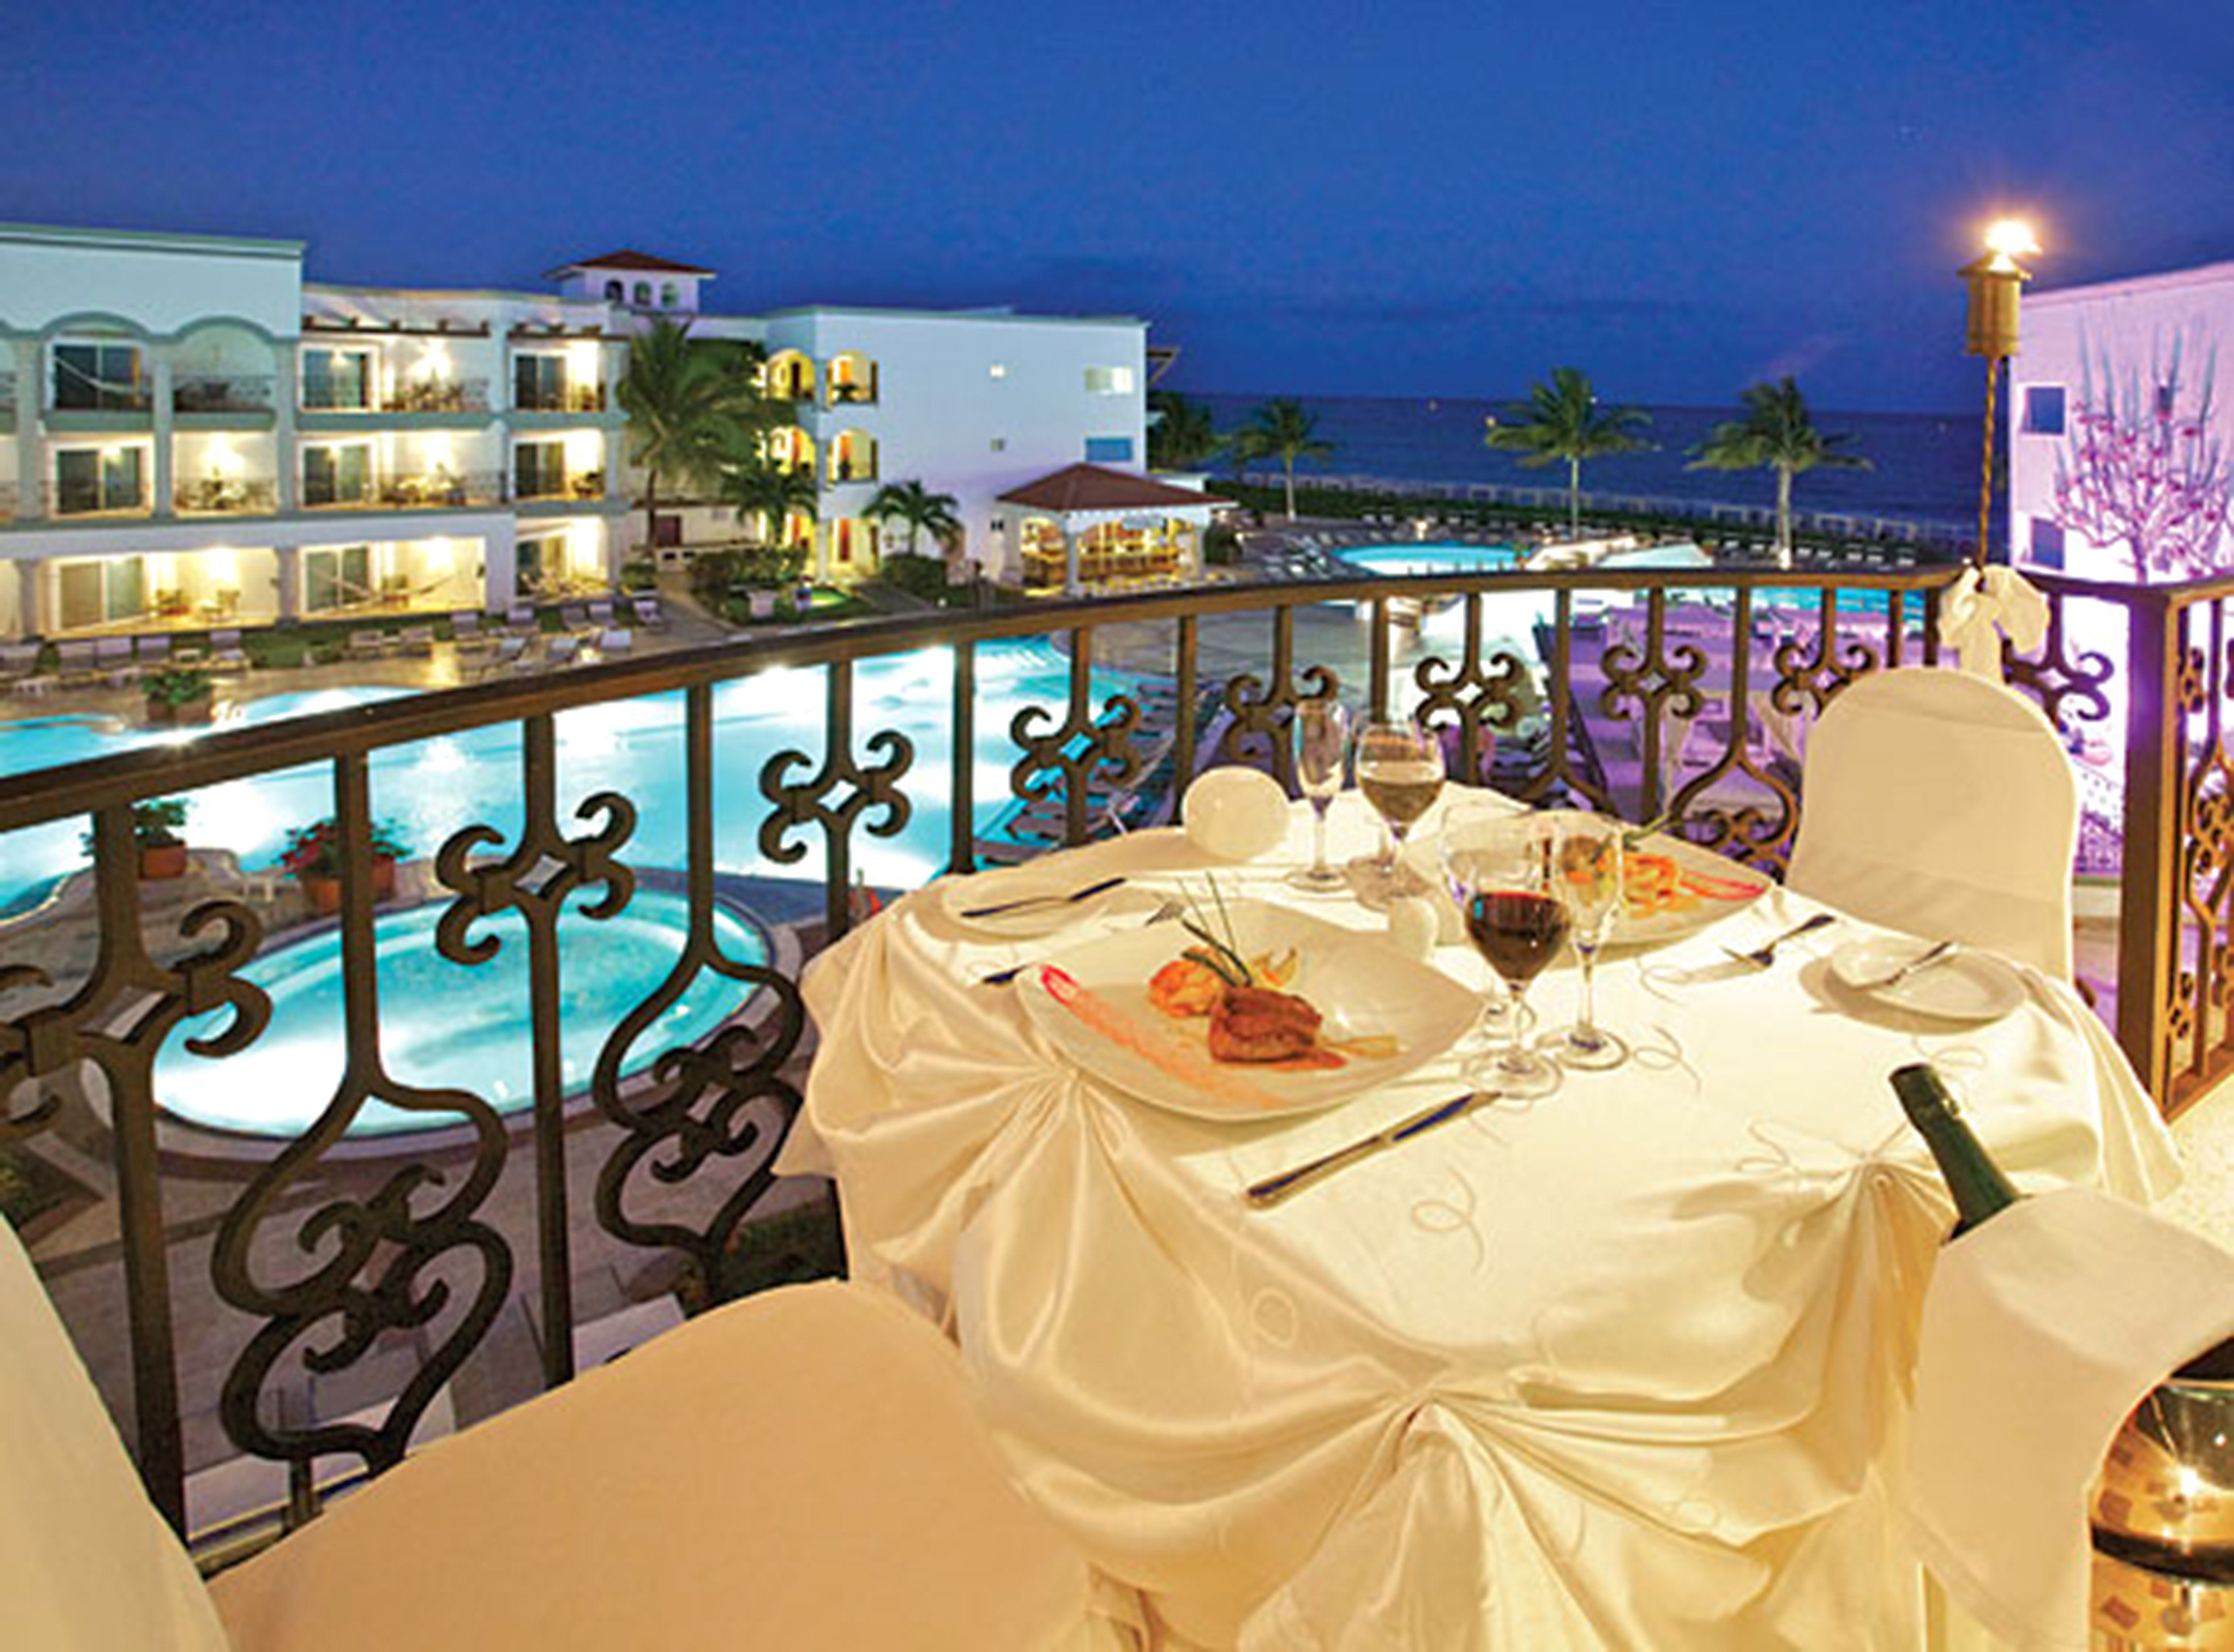 Balcony Bar Dining Drink Eat Elegant Luxury Romantic Scenic views restaurant Resort